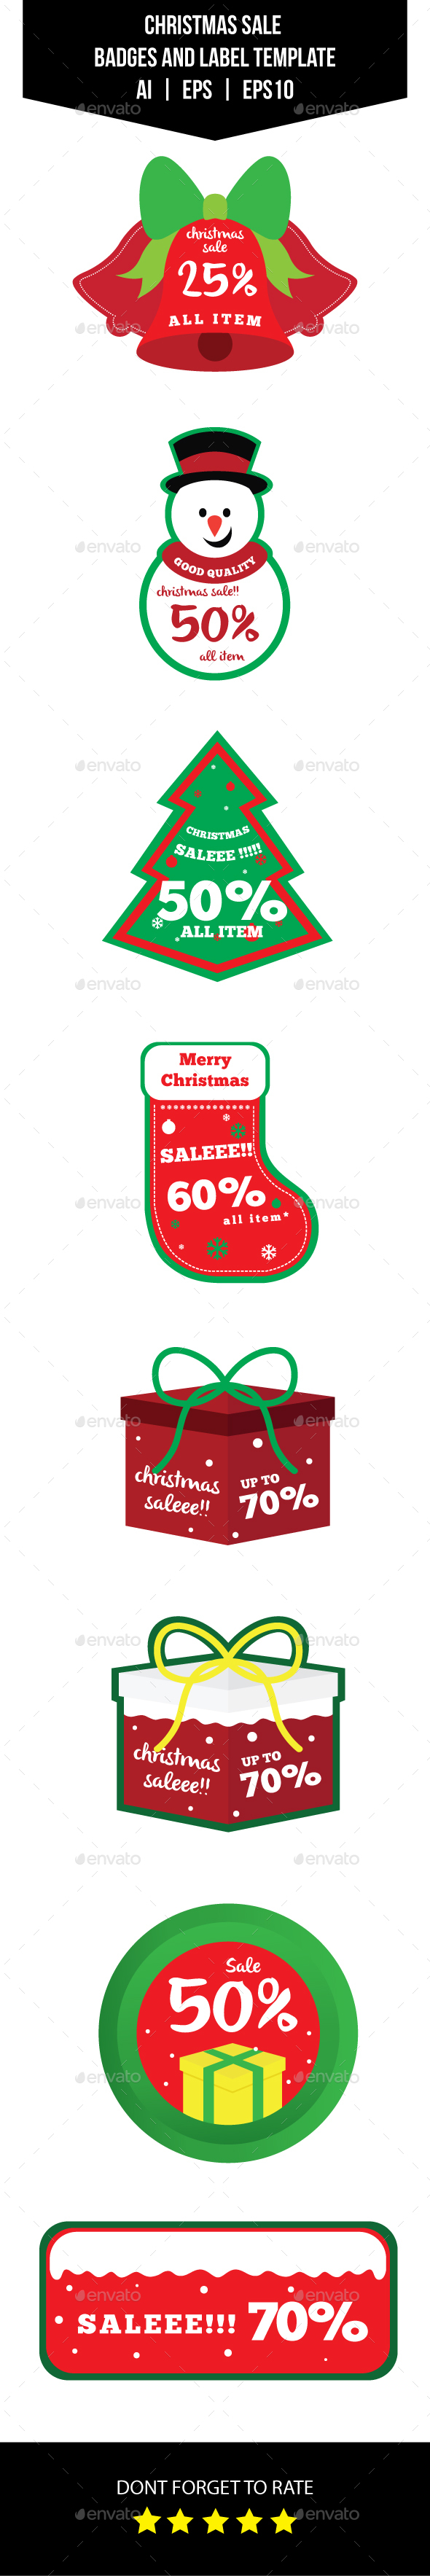 Christmas Sale Badges and Label Template - Badges & Stickers Web Elements